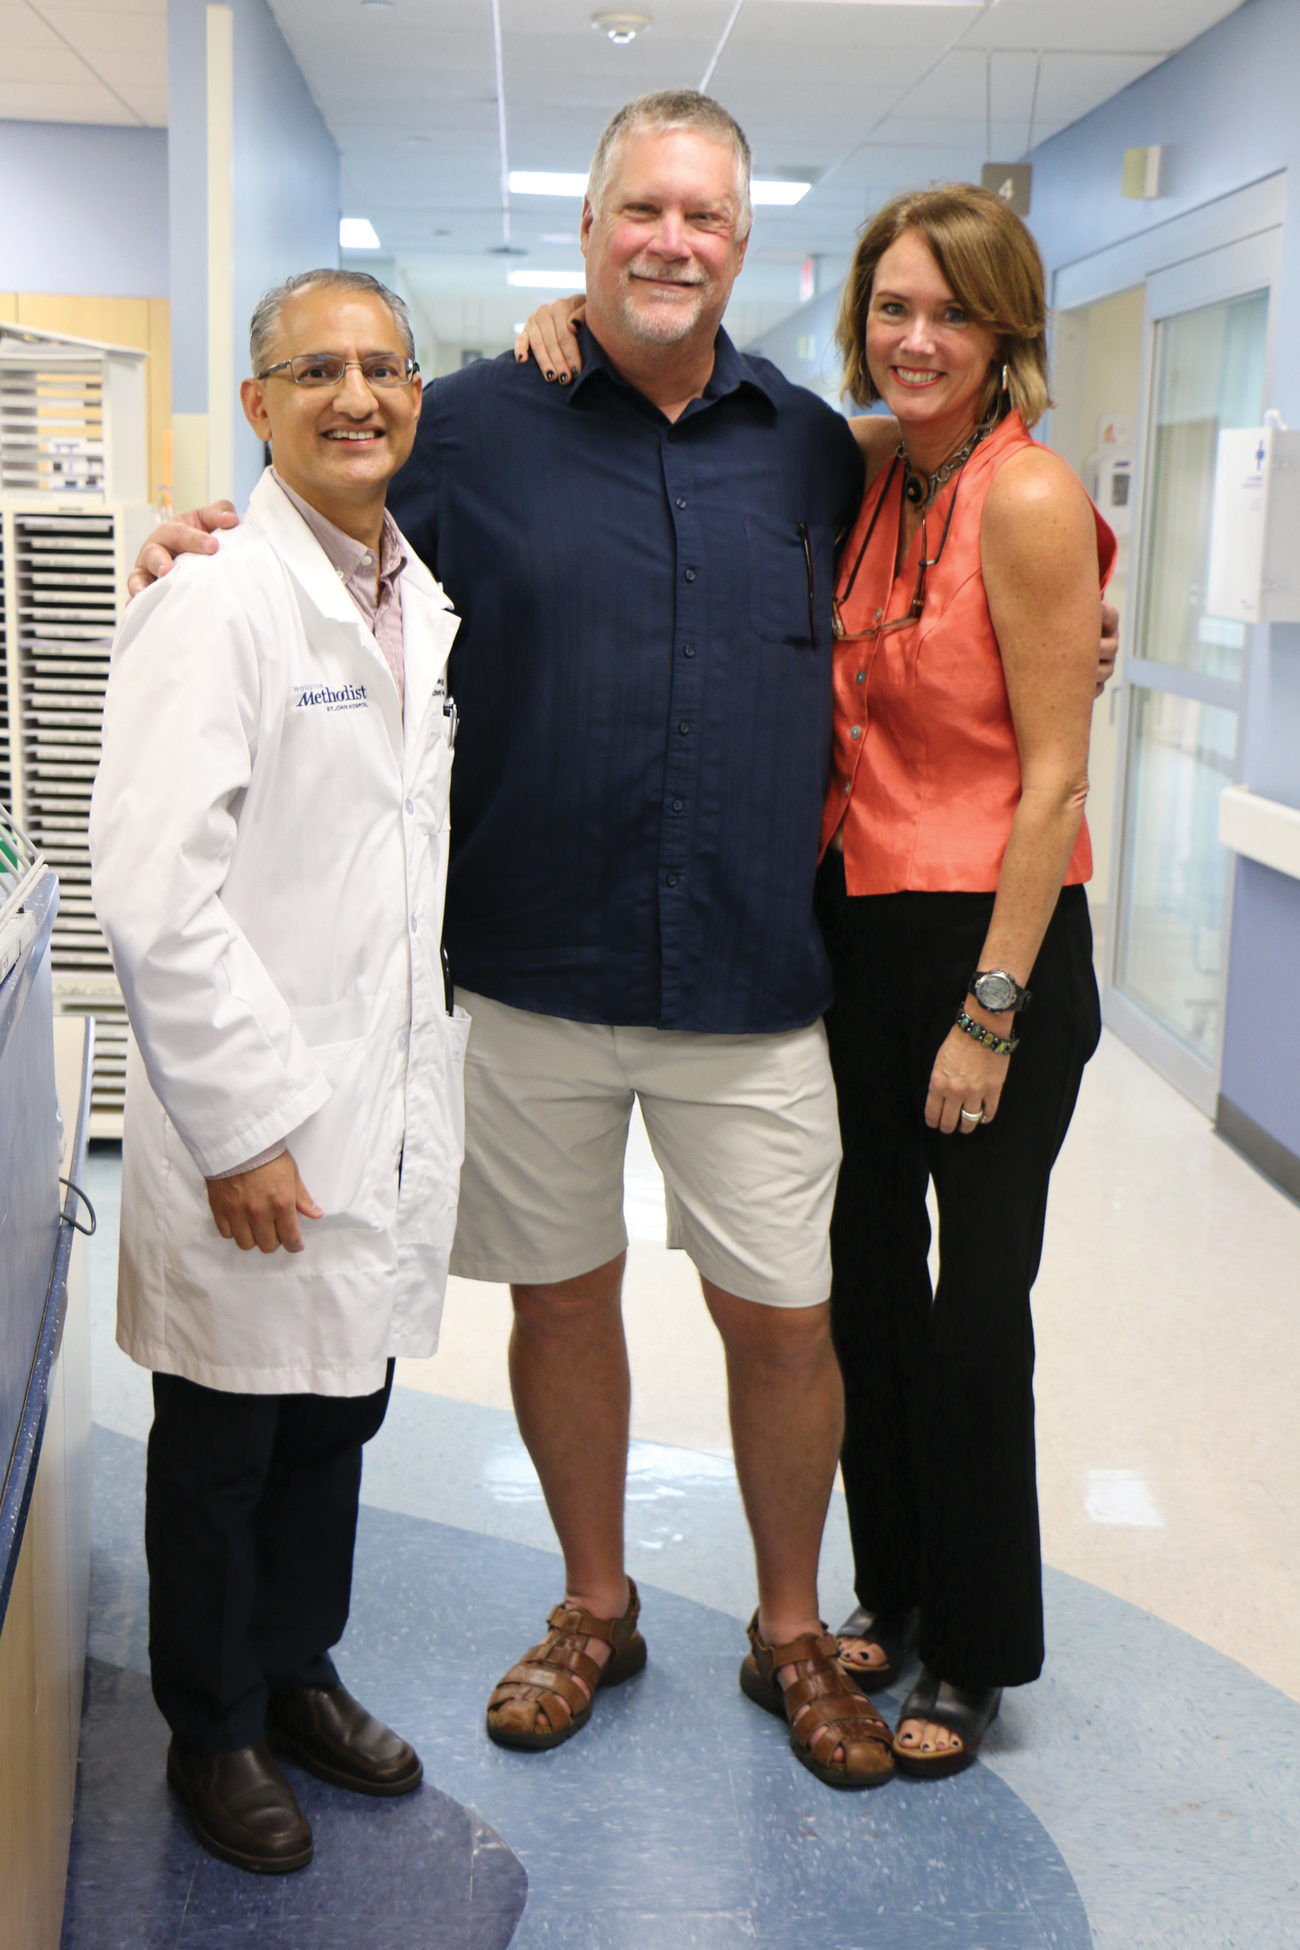 Curtis and Lisa Dishman visit with Houston Methodist St. John Hospital emergency medical physician, Dr. Sandeep Duggal.